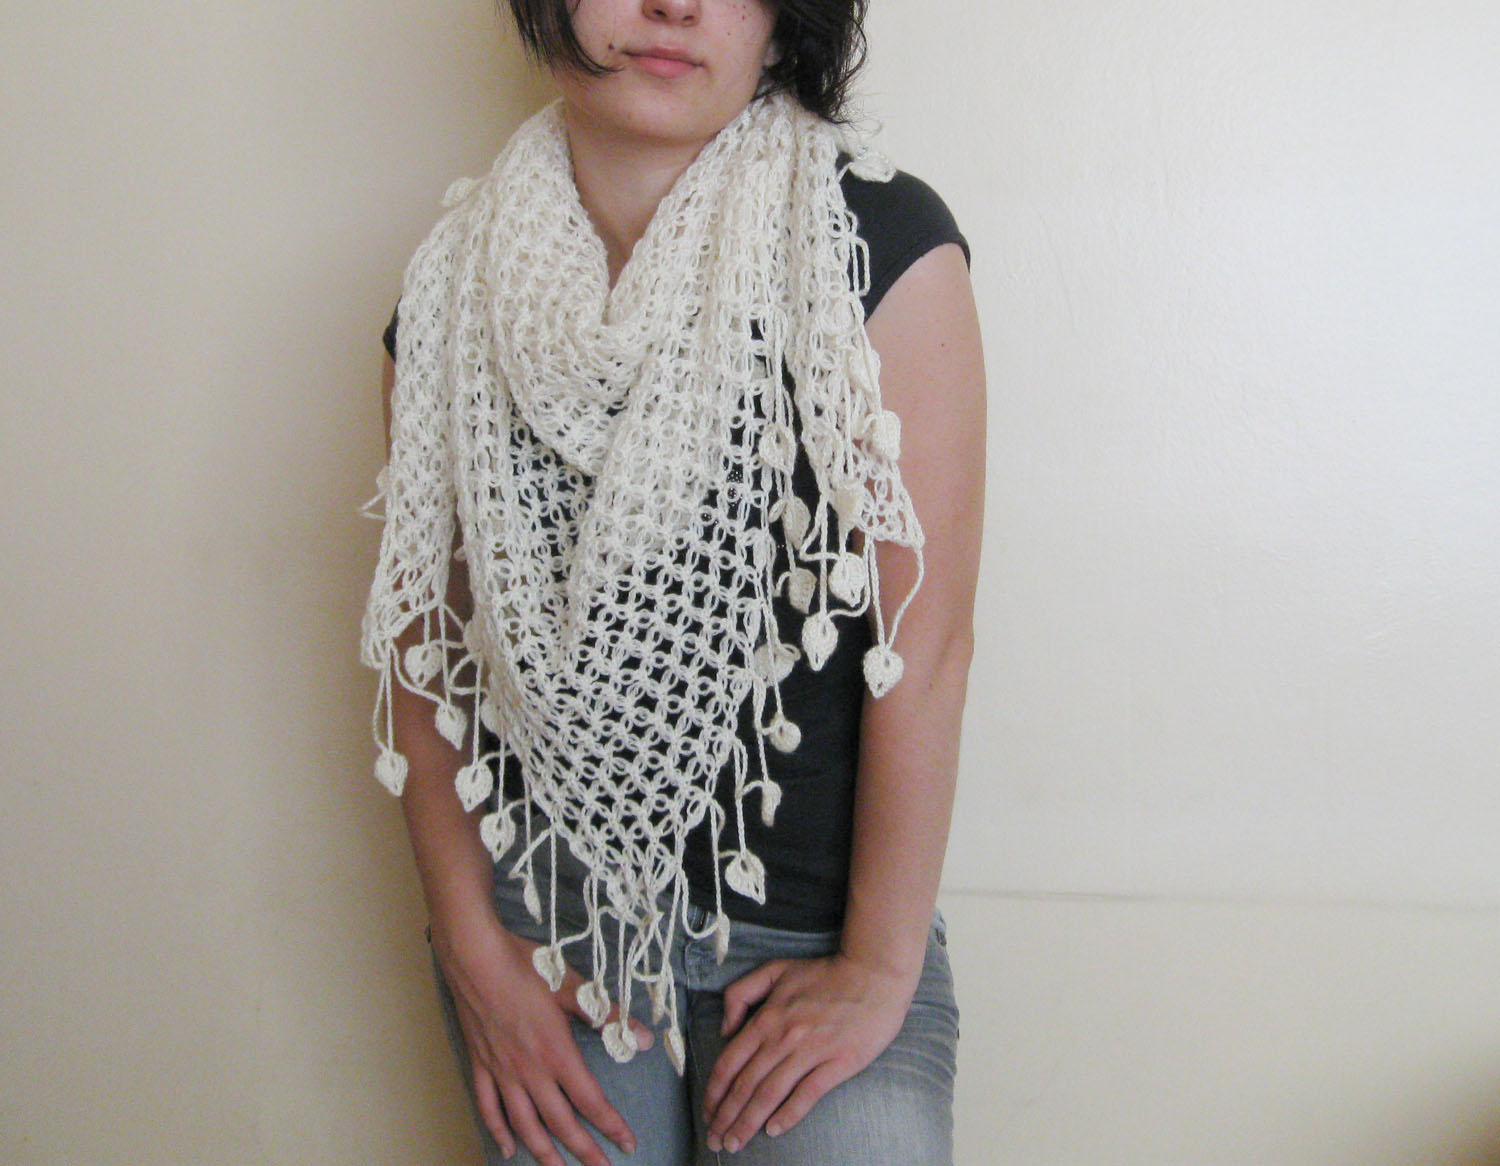 Hand crocheted lace shawl the finished shape is triangular the best